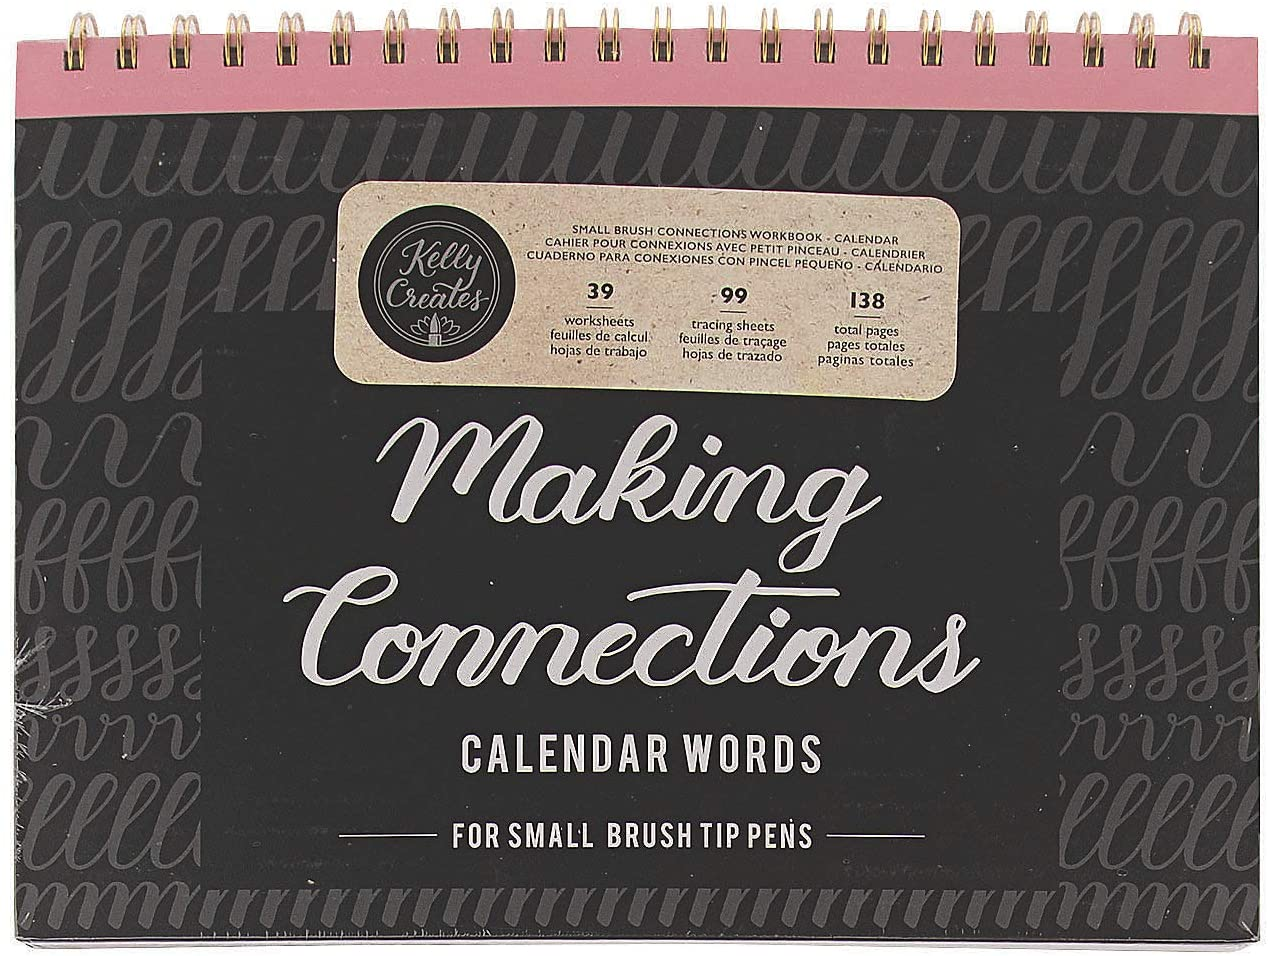 American Crafts - Small Brush Calendar Words Workbook - Crafts for Kids and Fun Home Activities